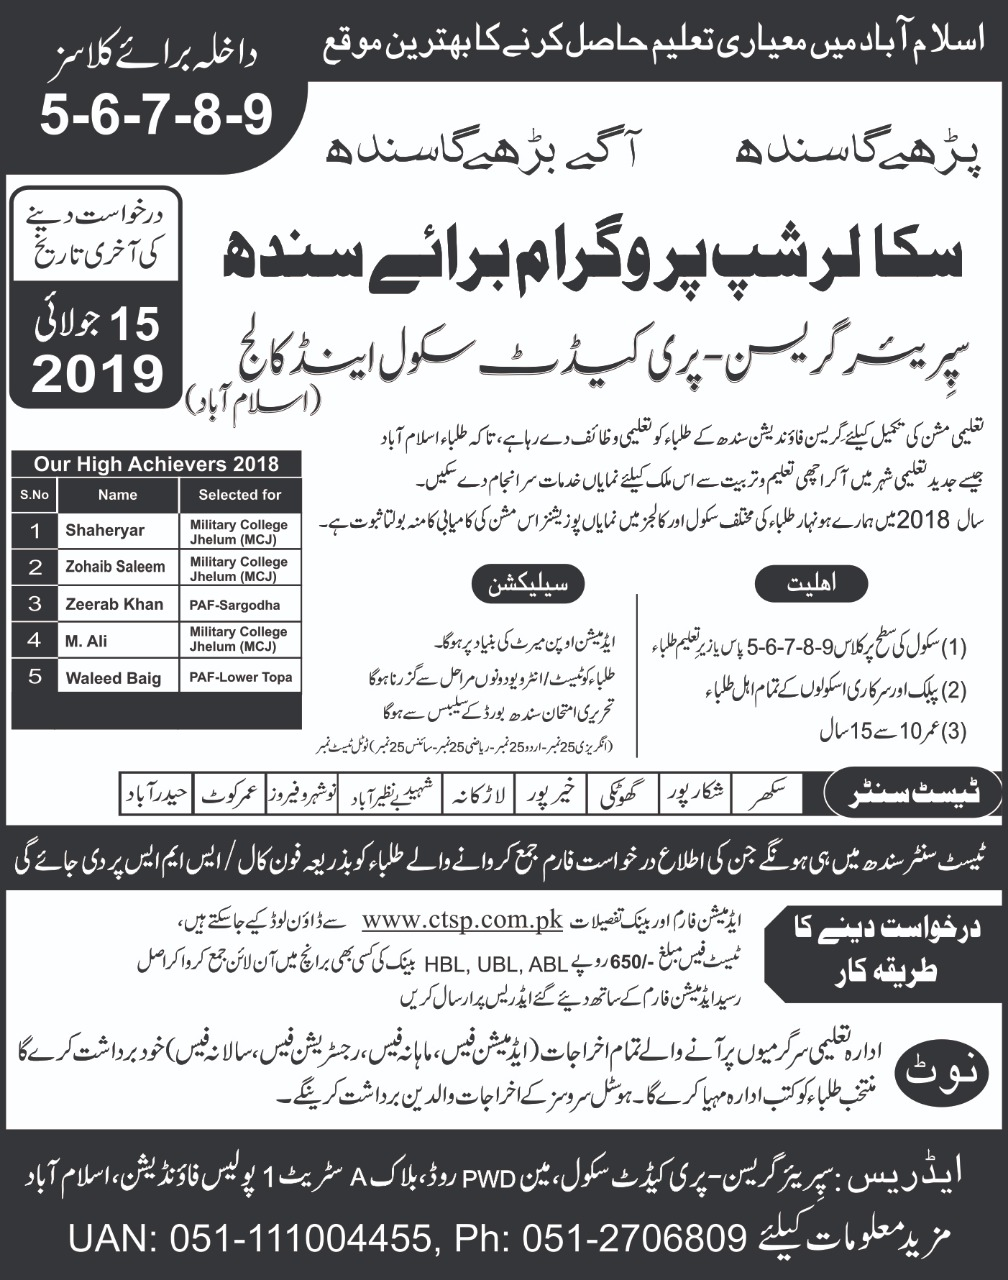 Superior Garrison Pre Cadet School and College Islamabad Scholarship for Sindh